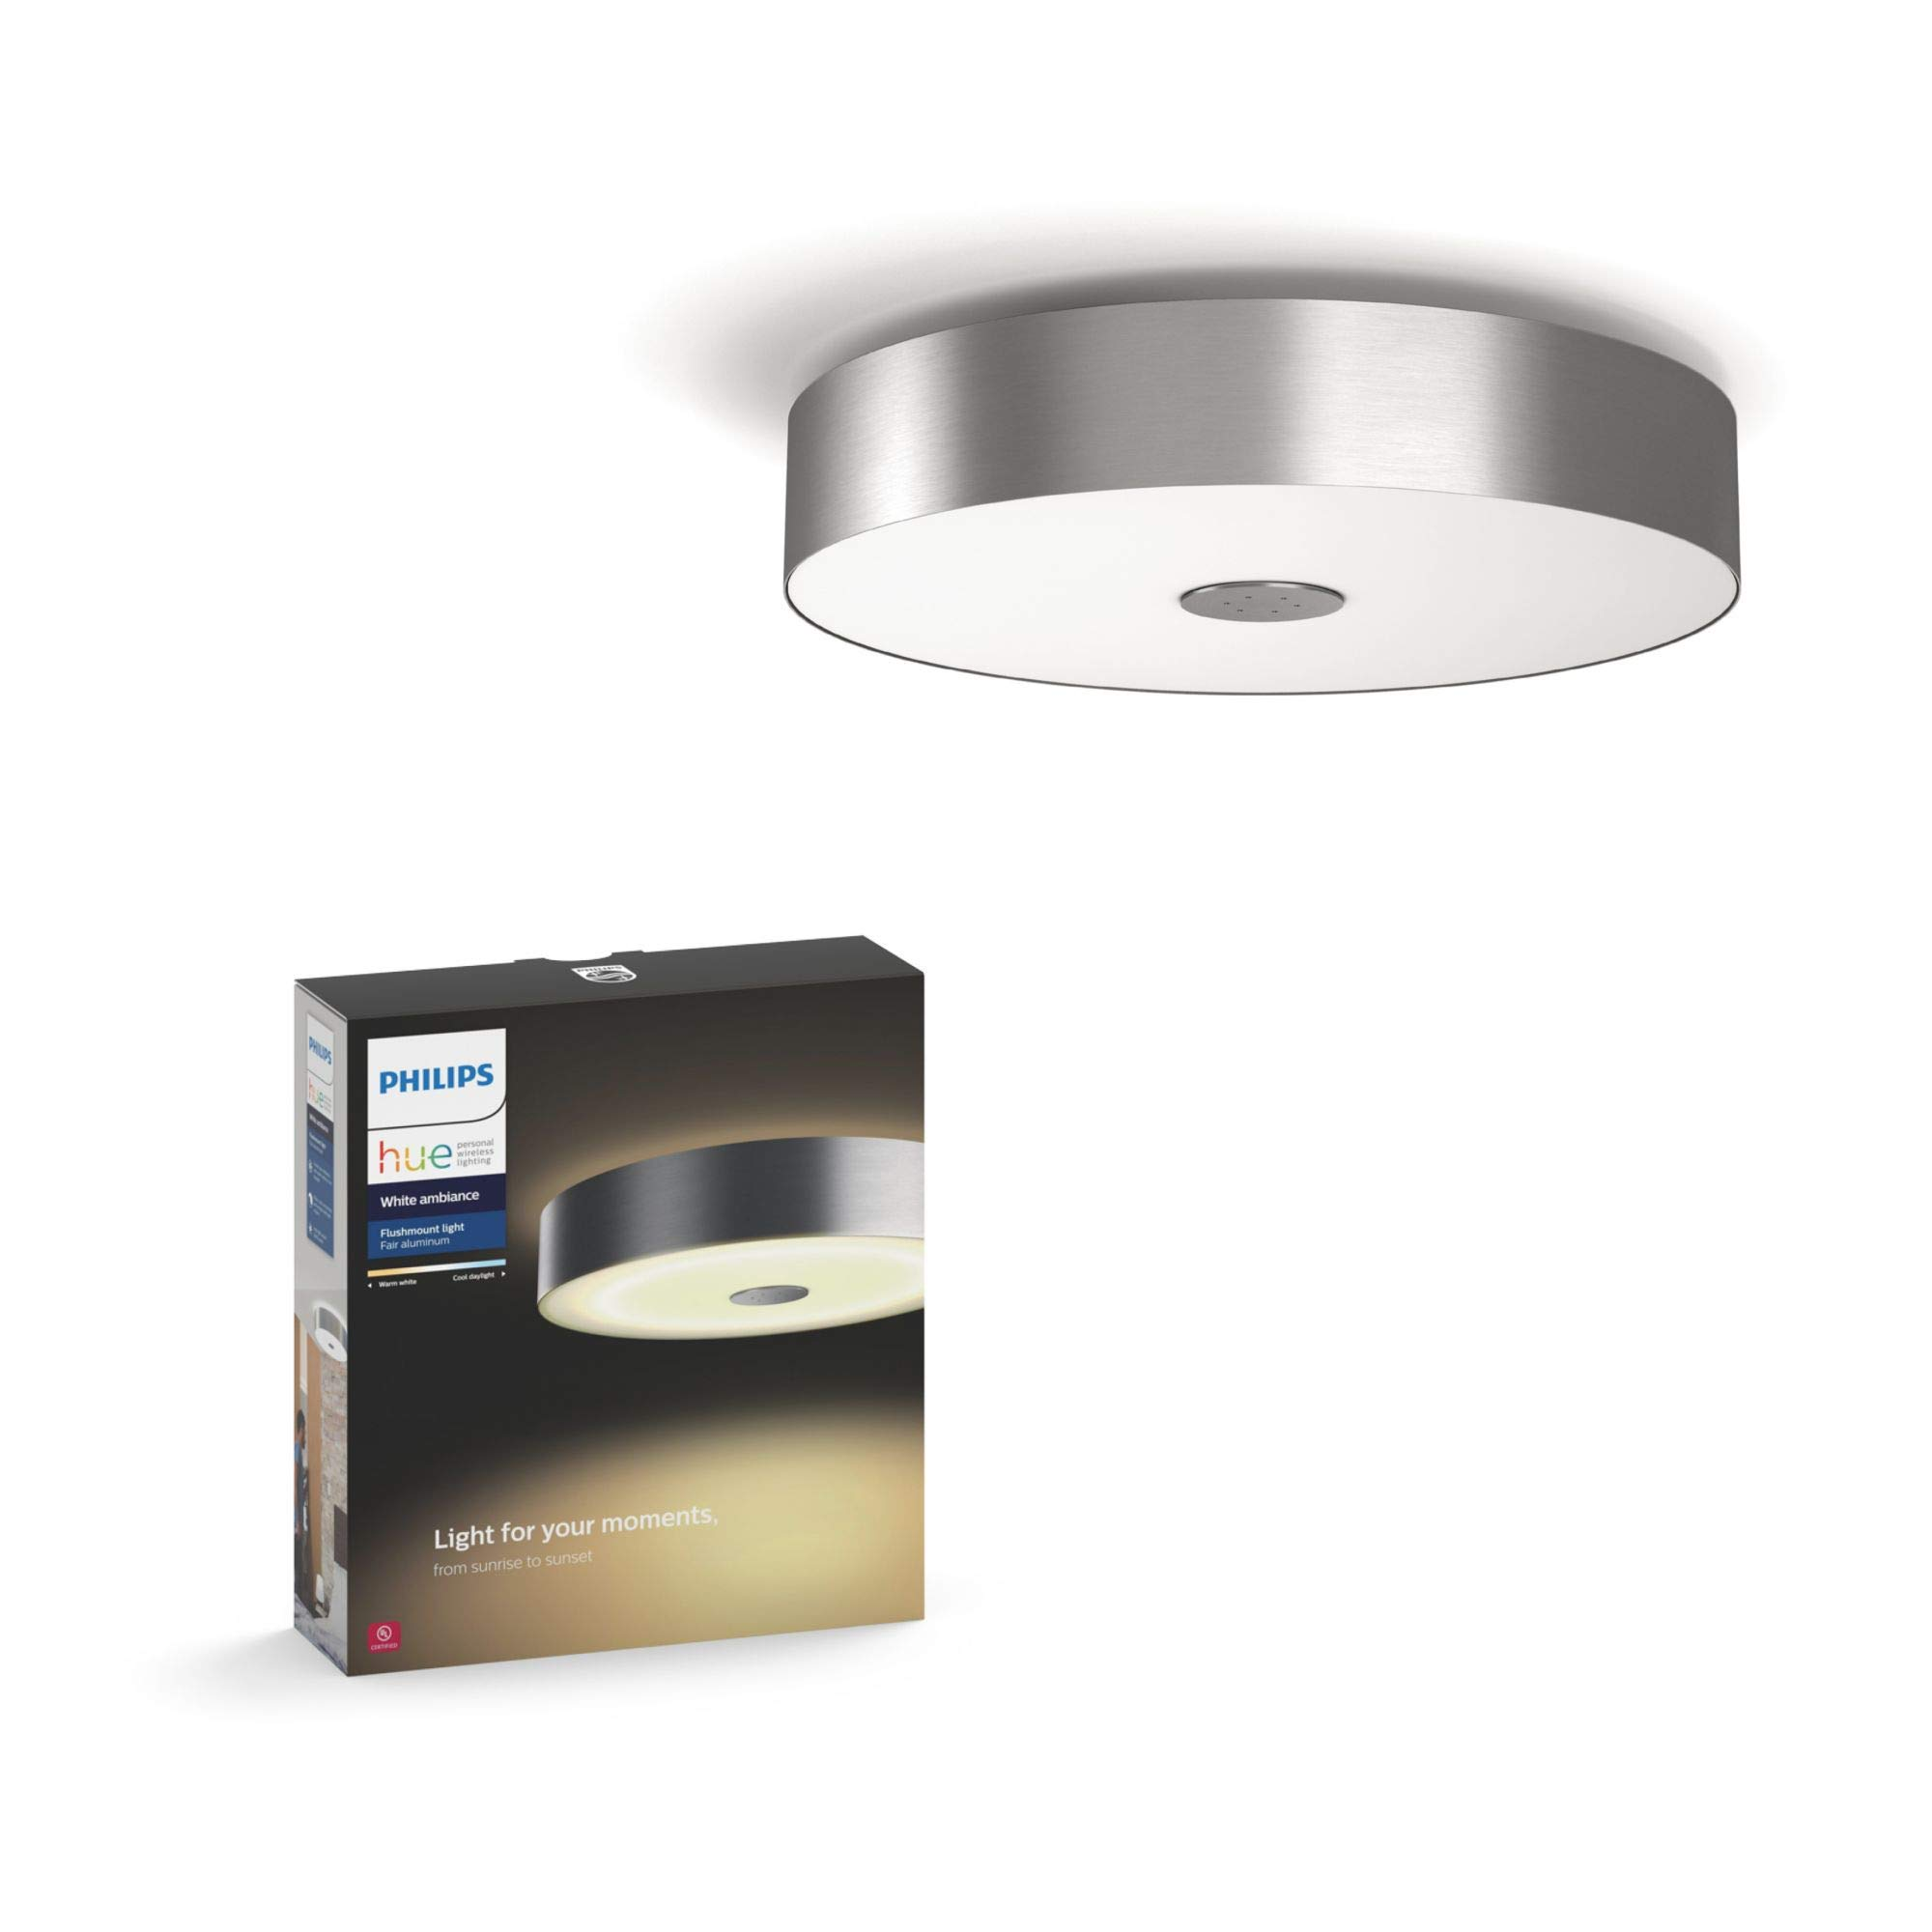 Philips Hue 458489 Hue Ambiance Fair Dimmable LED